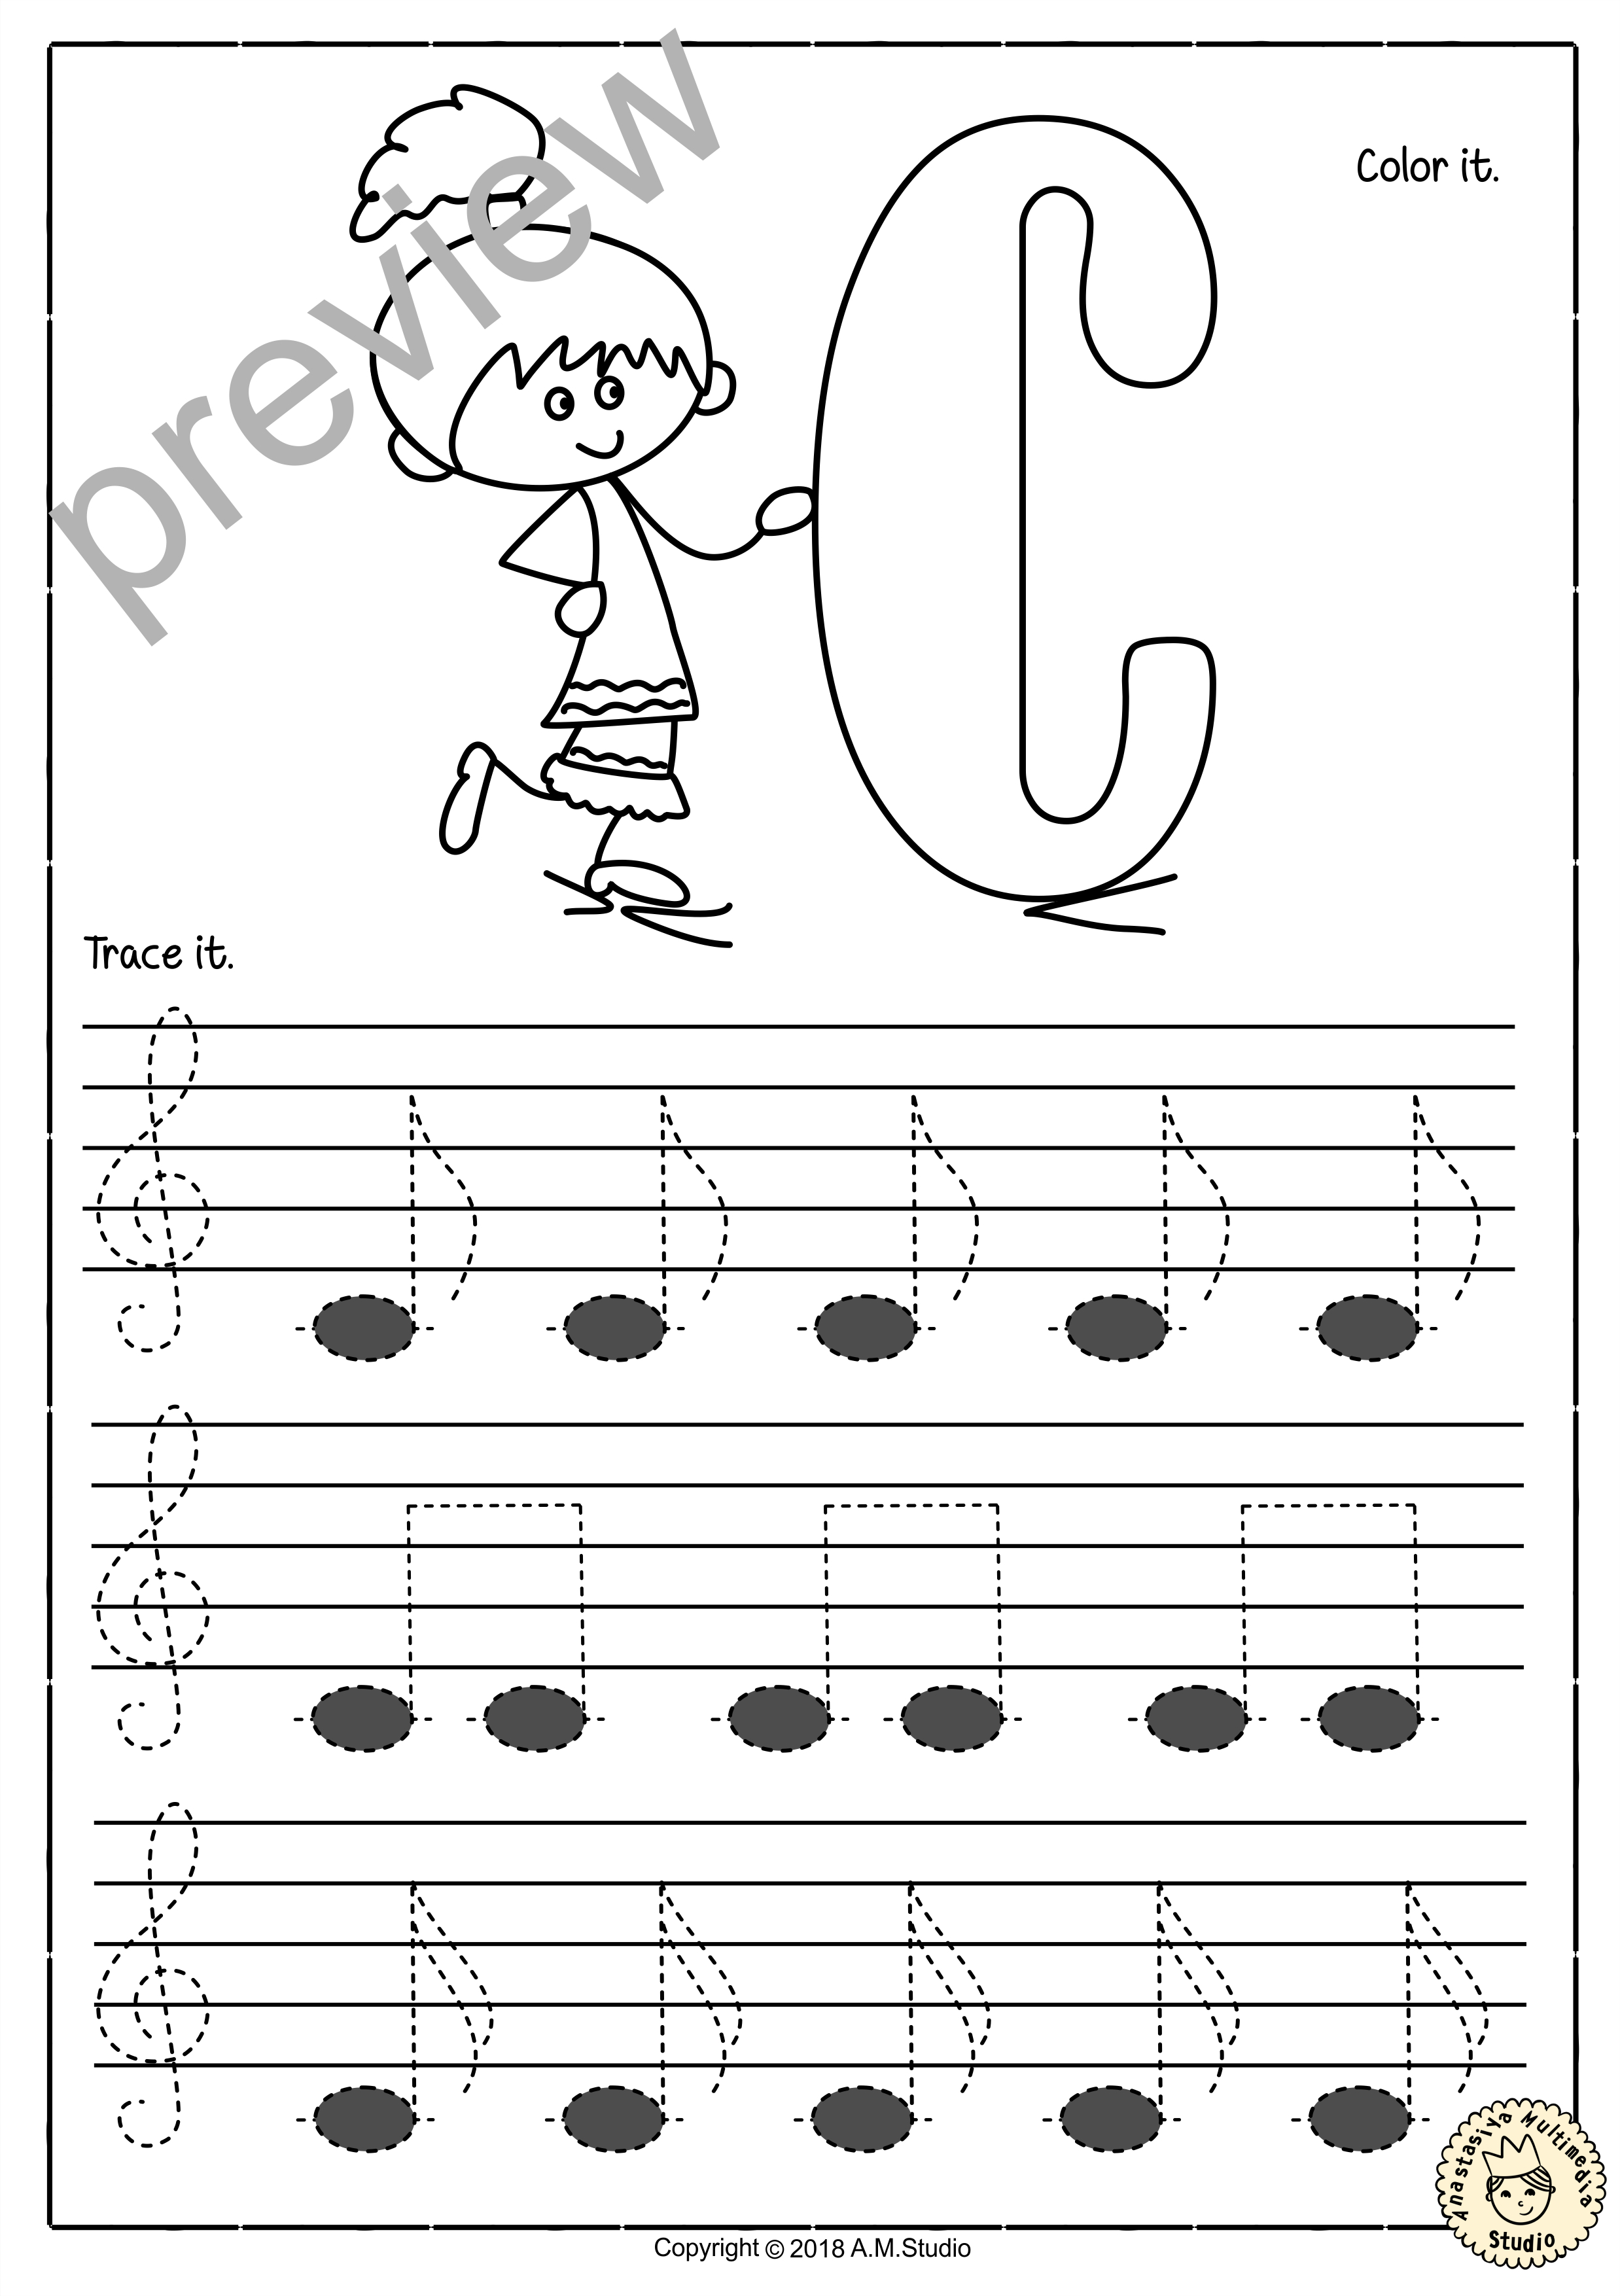 Tracing Music Notes Worksheets For Kids Treble Clef3  Anastasiya Inside Music Worksheets For Kids